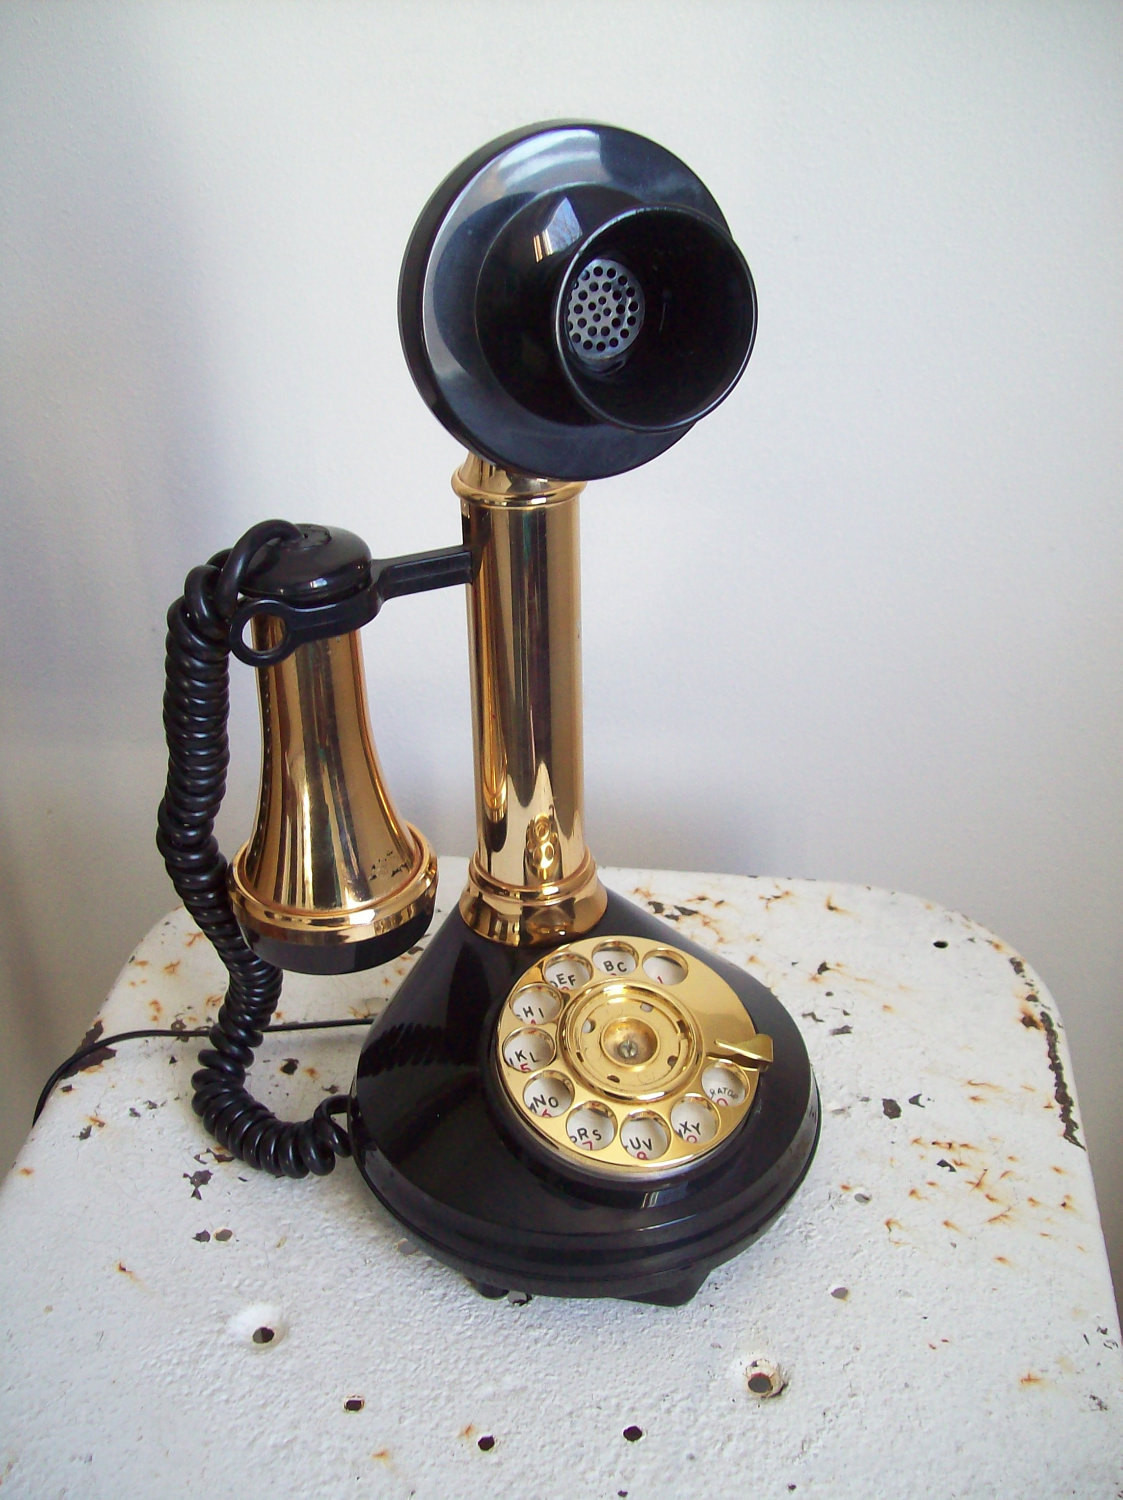 Vintage Deco Tel candlestick telephone rotary 1970s black and